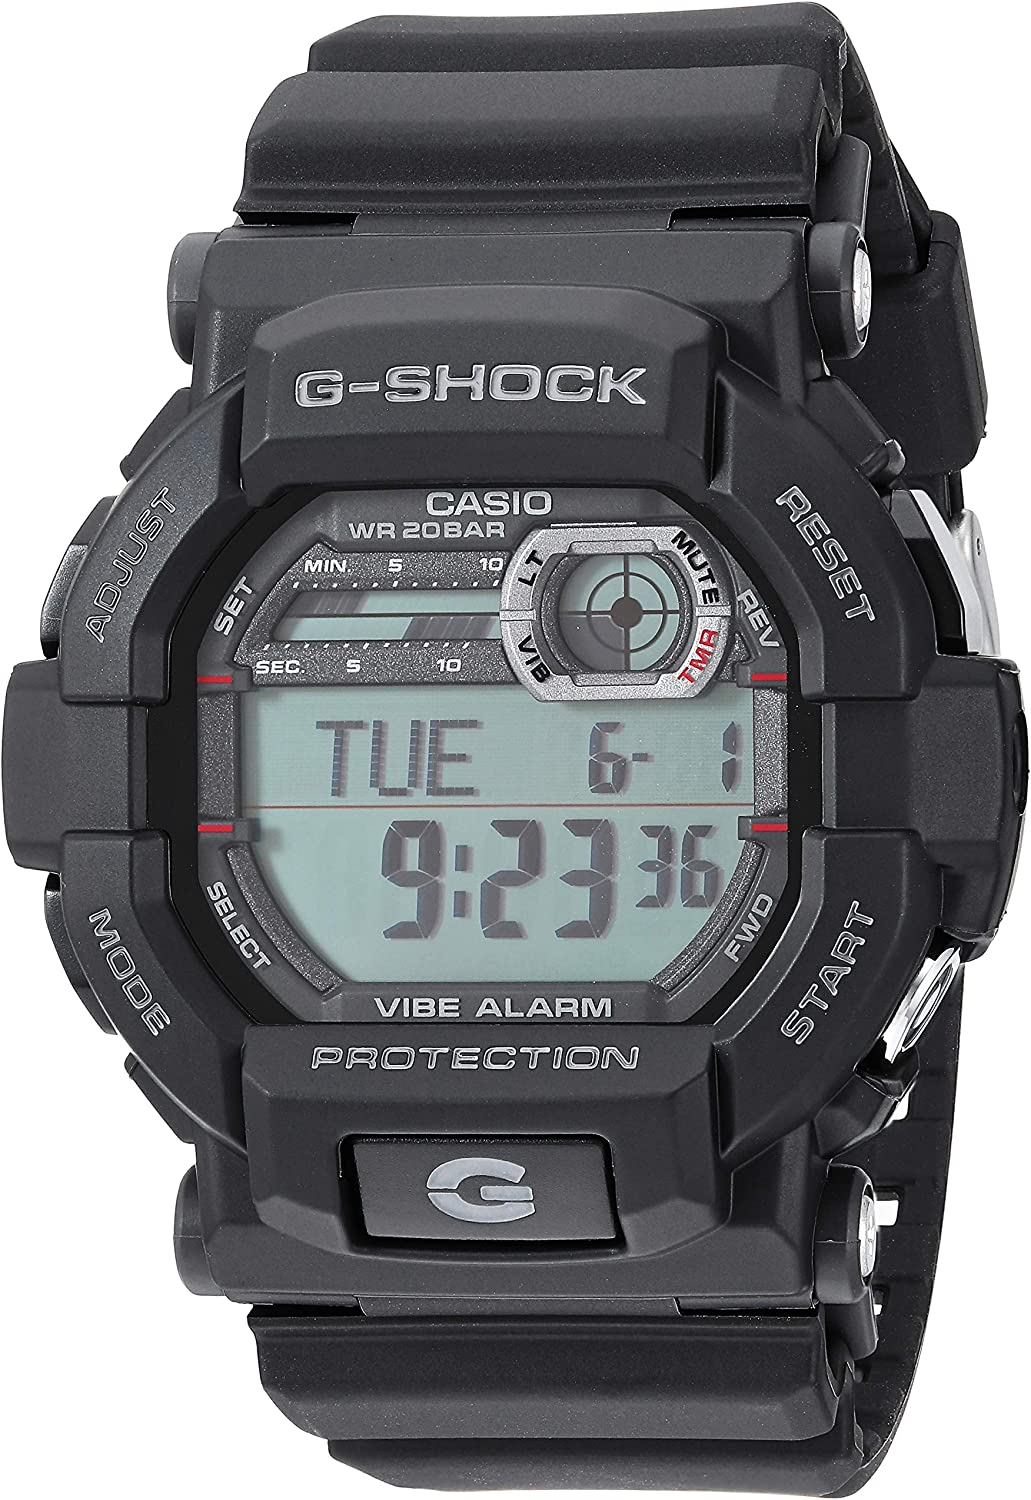 Casio GSHOCK Stainless Steel Quartz Watch with Resin Strap, Black, 21.4 Model GD350-1CR